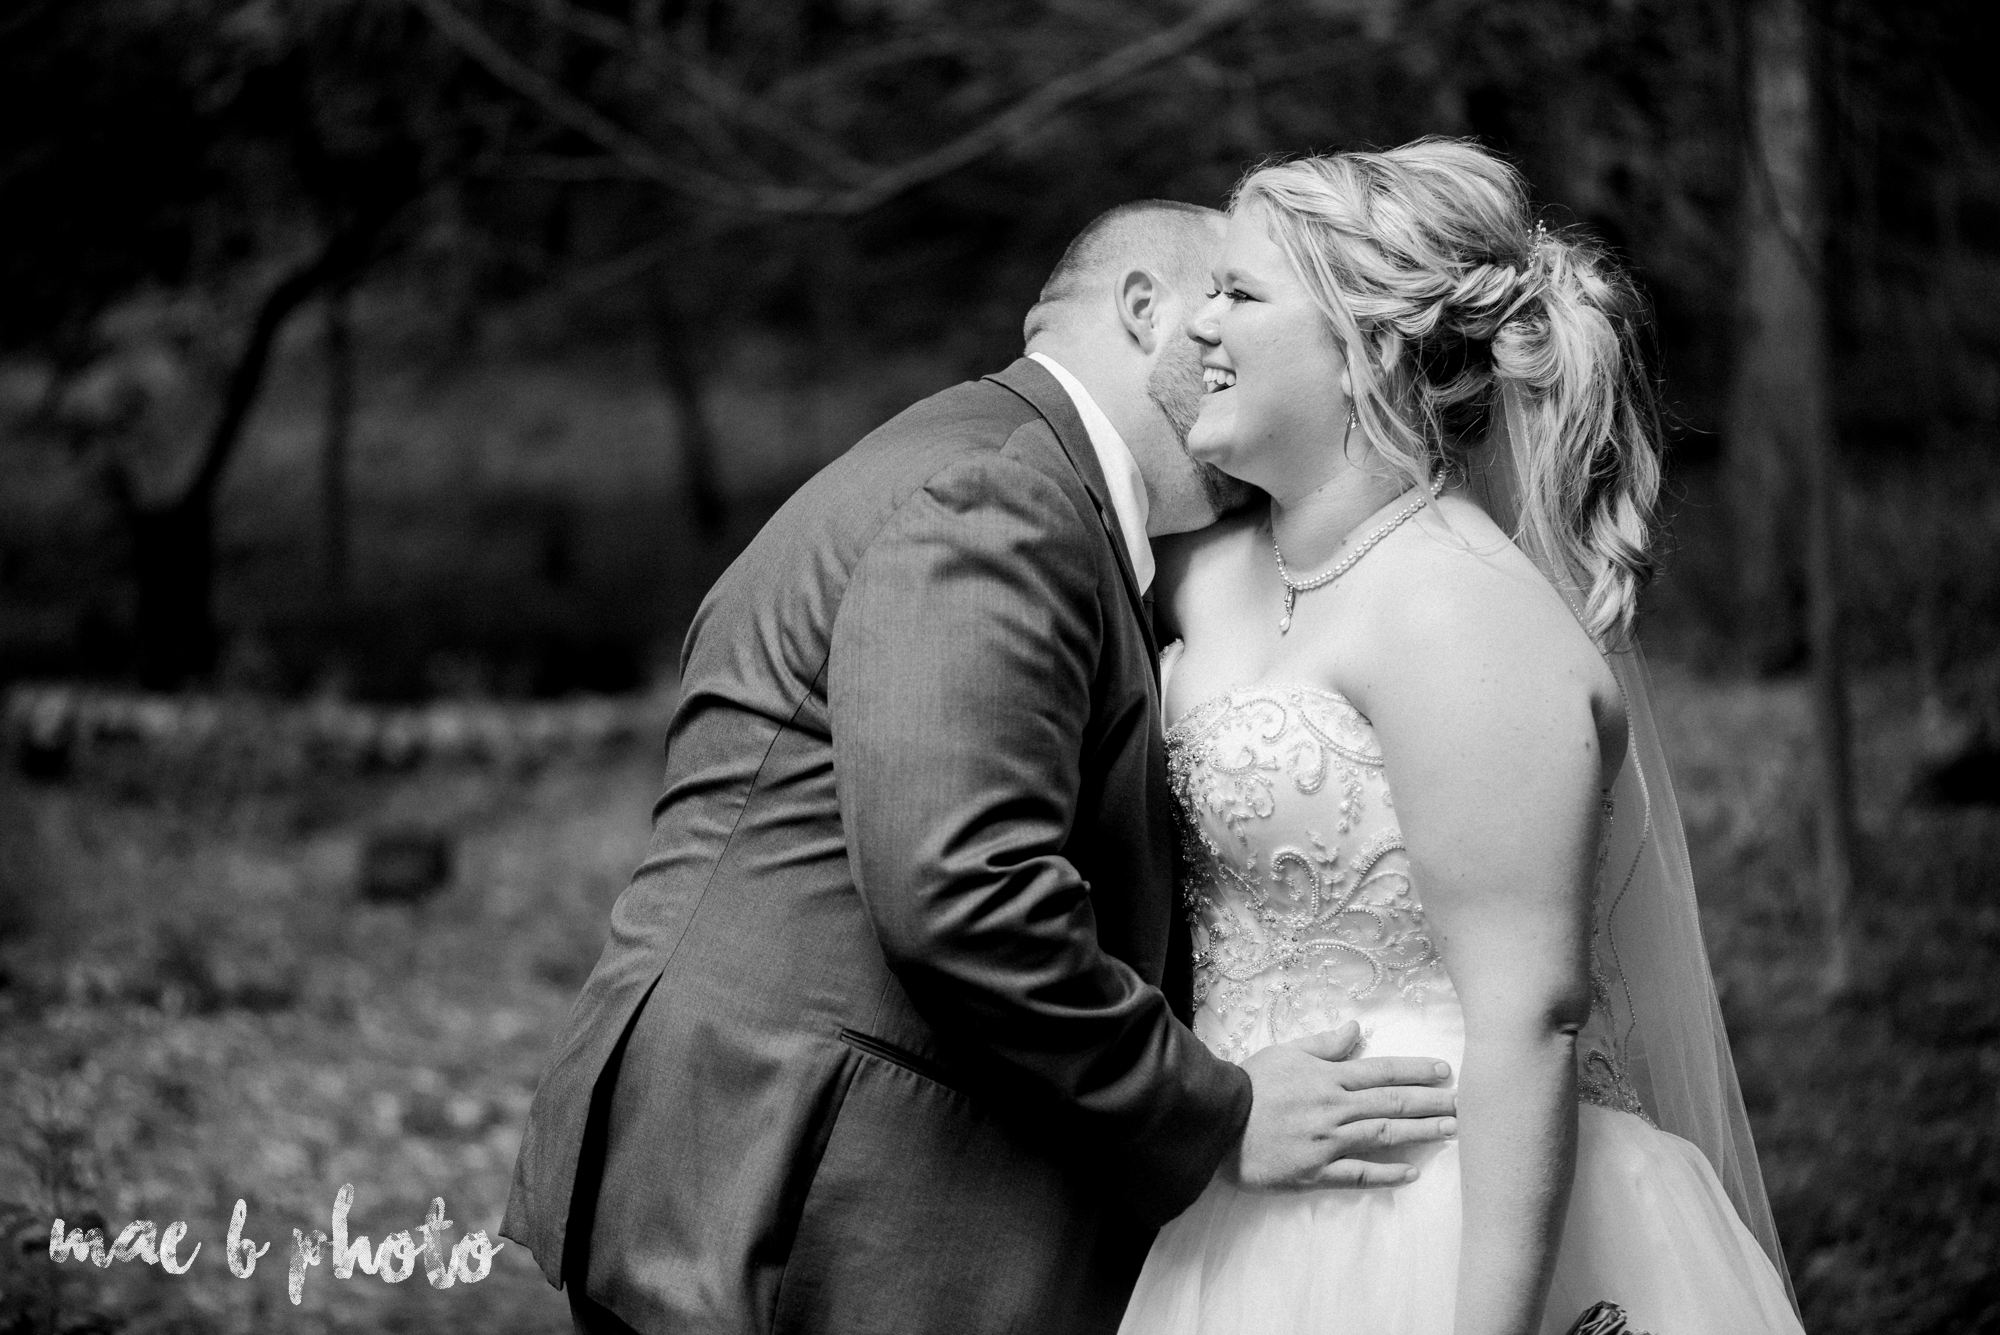 jenna and jay's personal fourth of july weekend wedding at mill creek park in youngstown ohio photographed by cleveland wedding photographer mae b photo-59.jpg